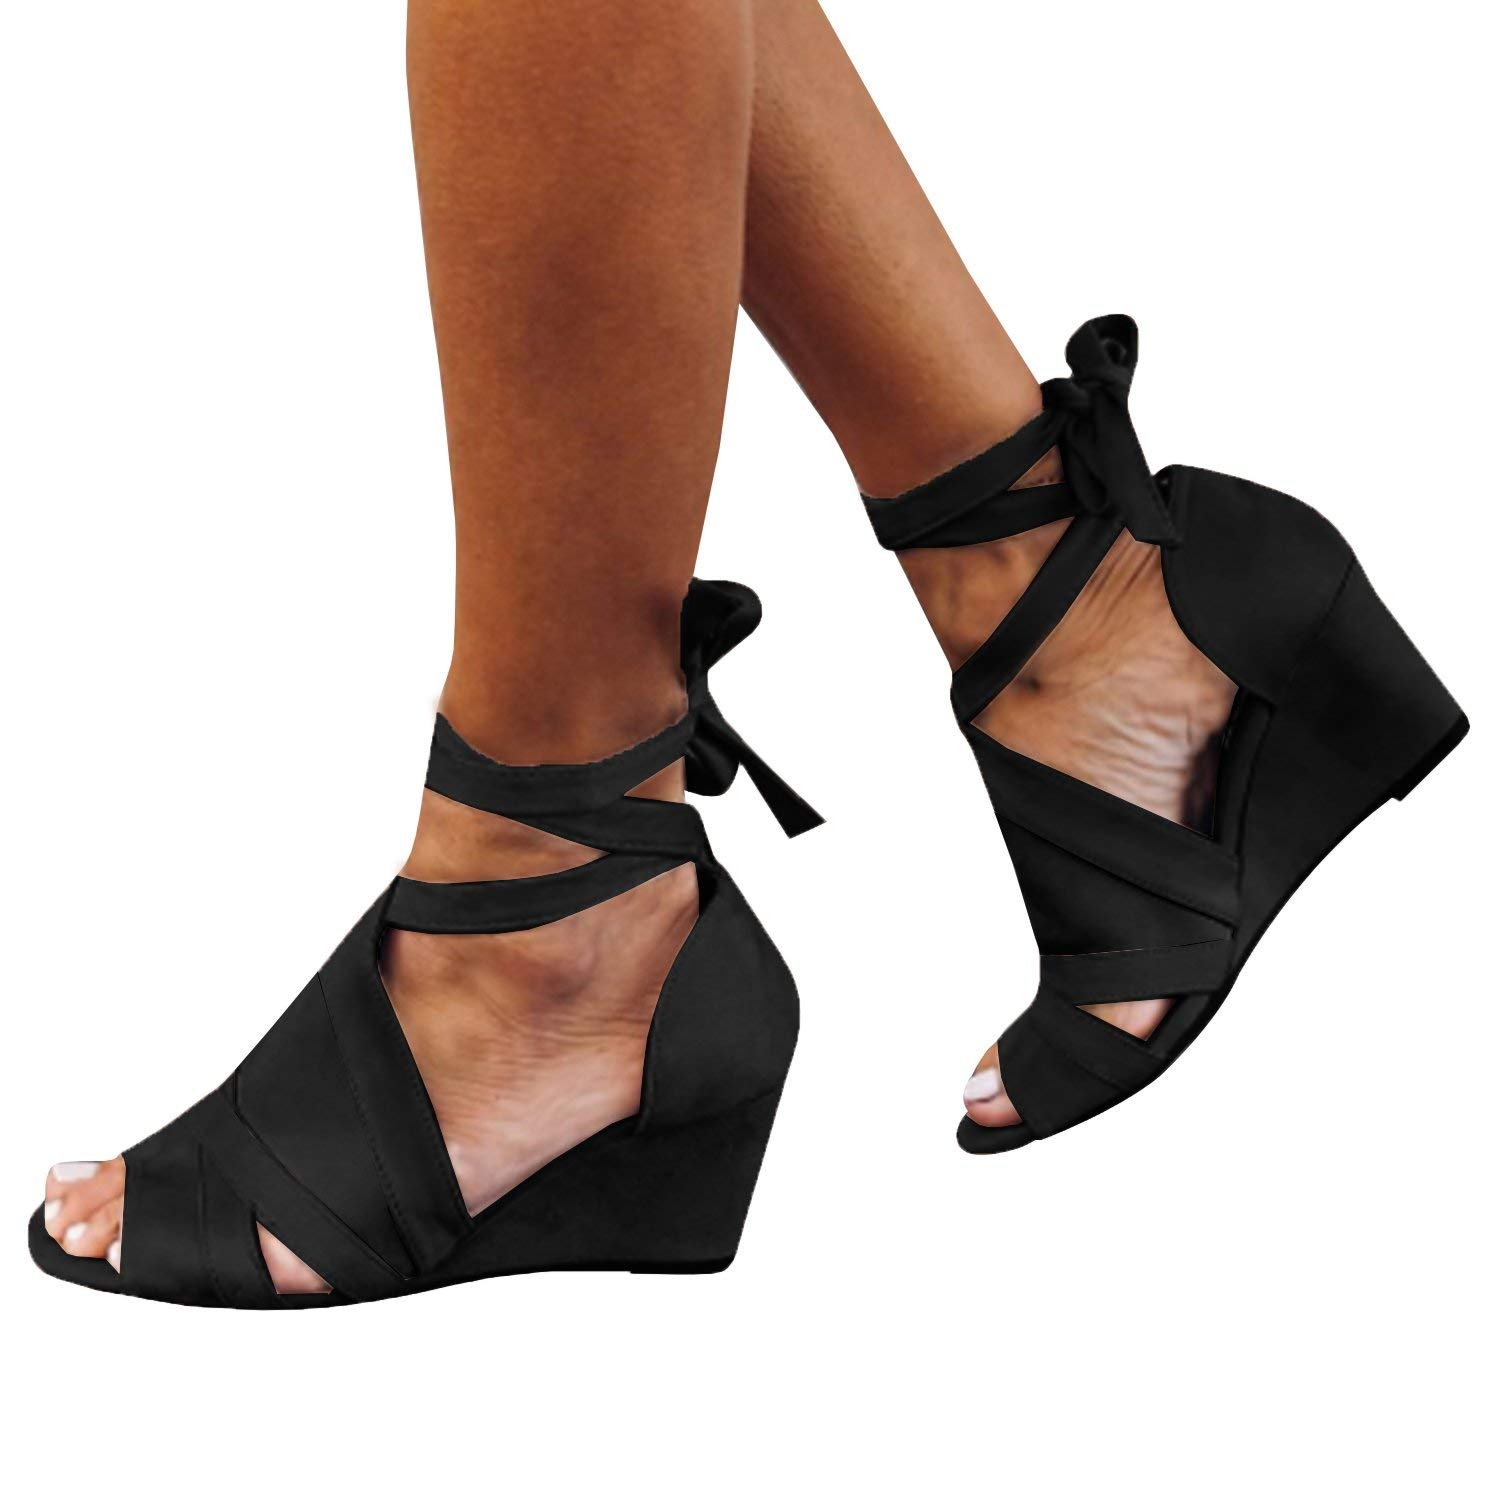 1c8a9f874f8 Cheap Strappy Peep Toe Sandals, find Strappy Peep Toe Sandals deals ...